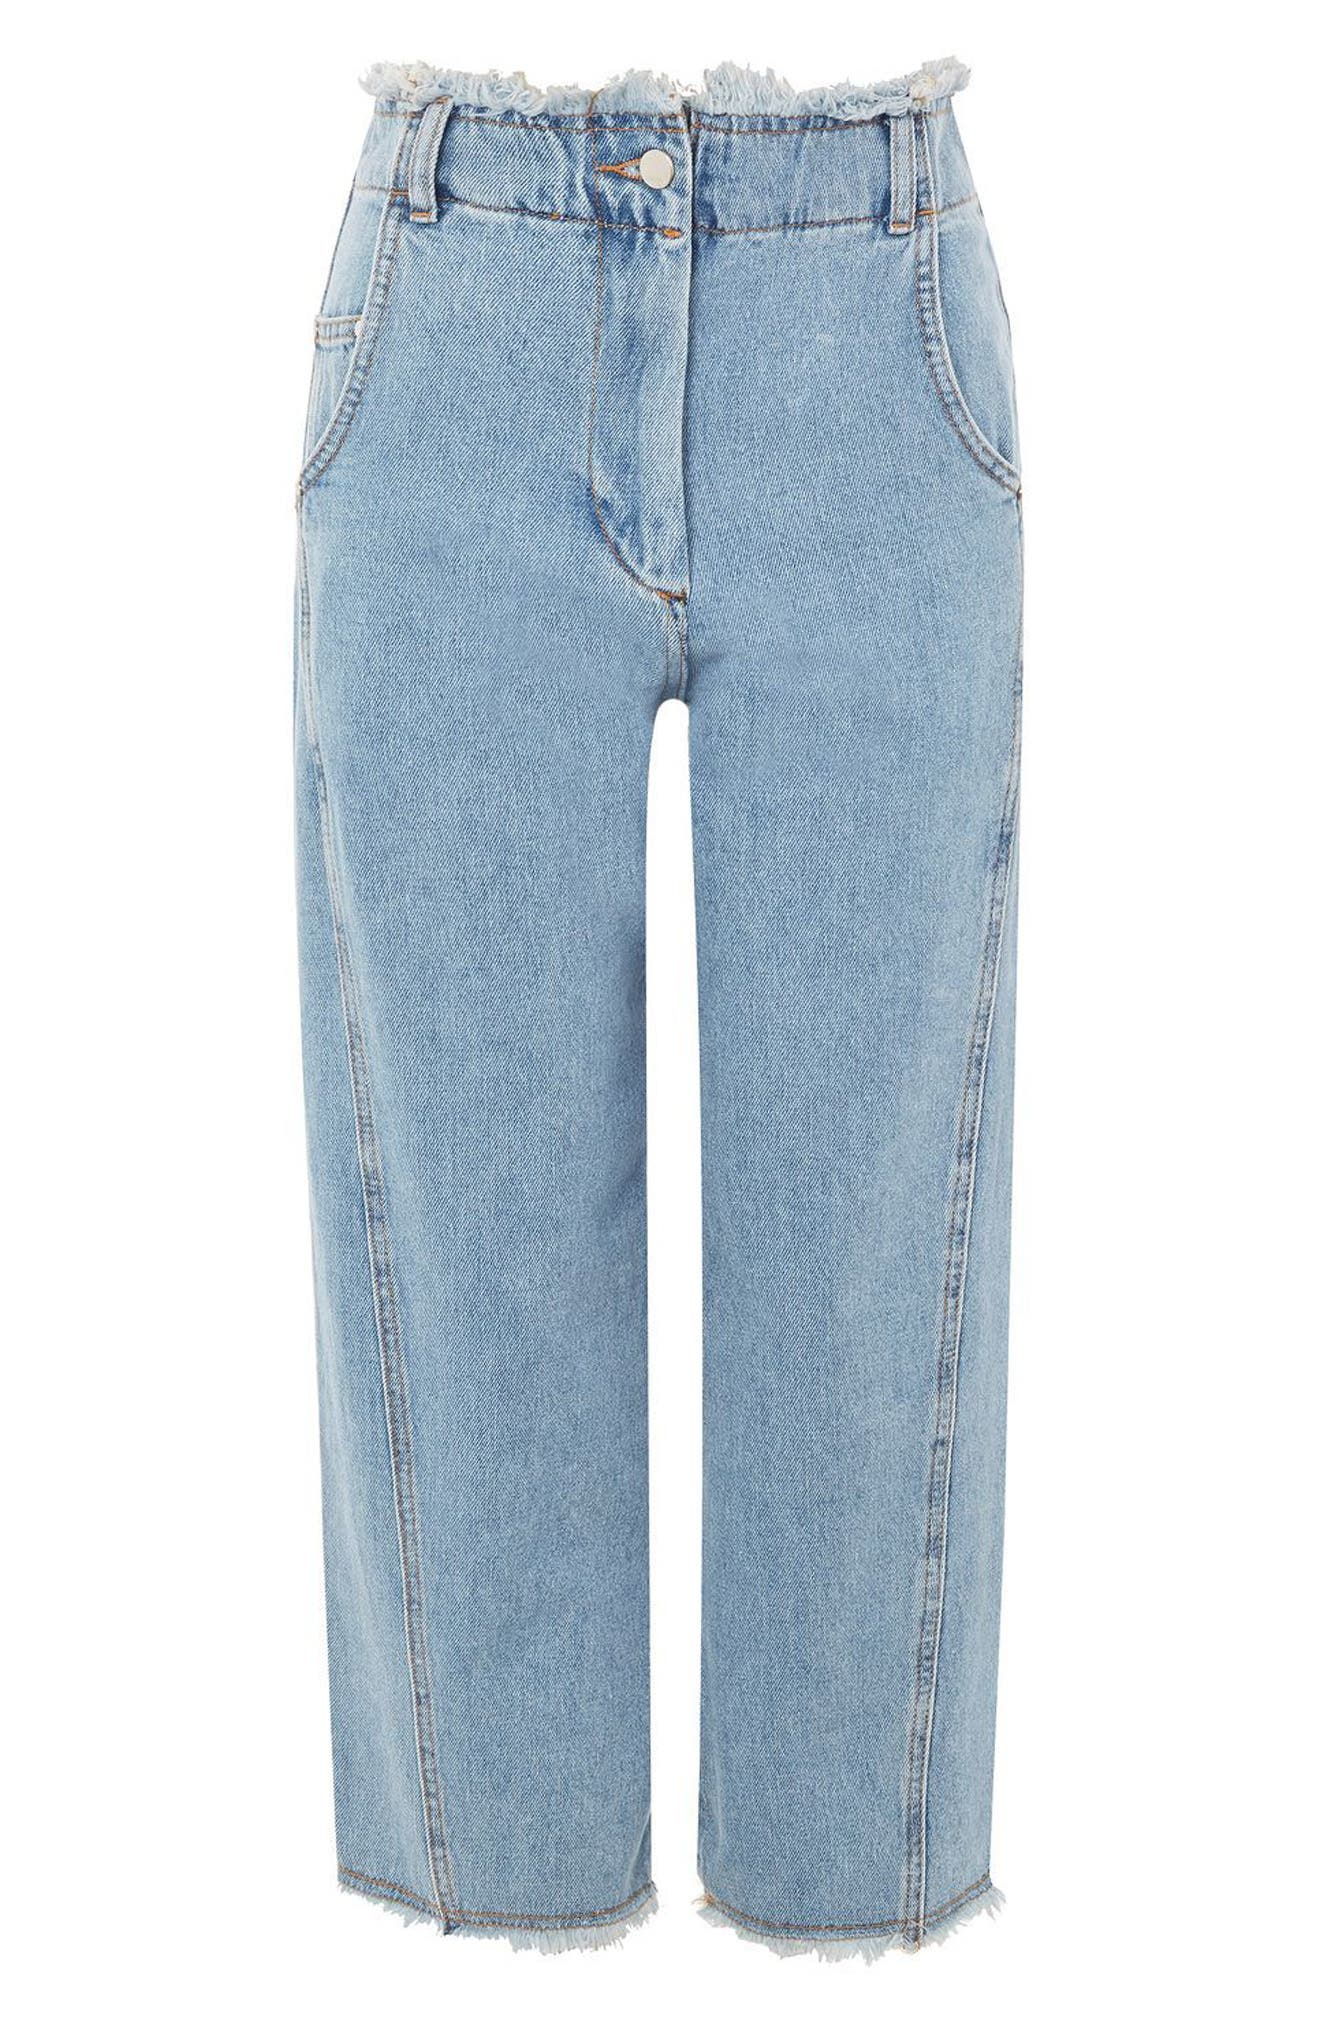 Topshop Boutique Twisted Baggy Fray Jeans